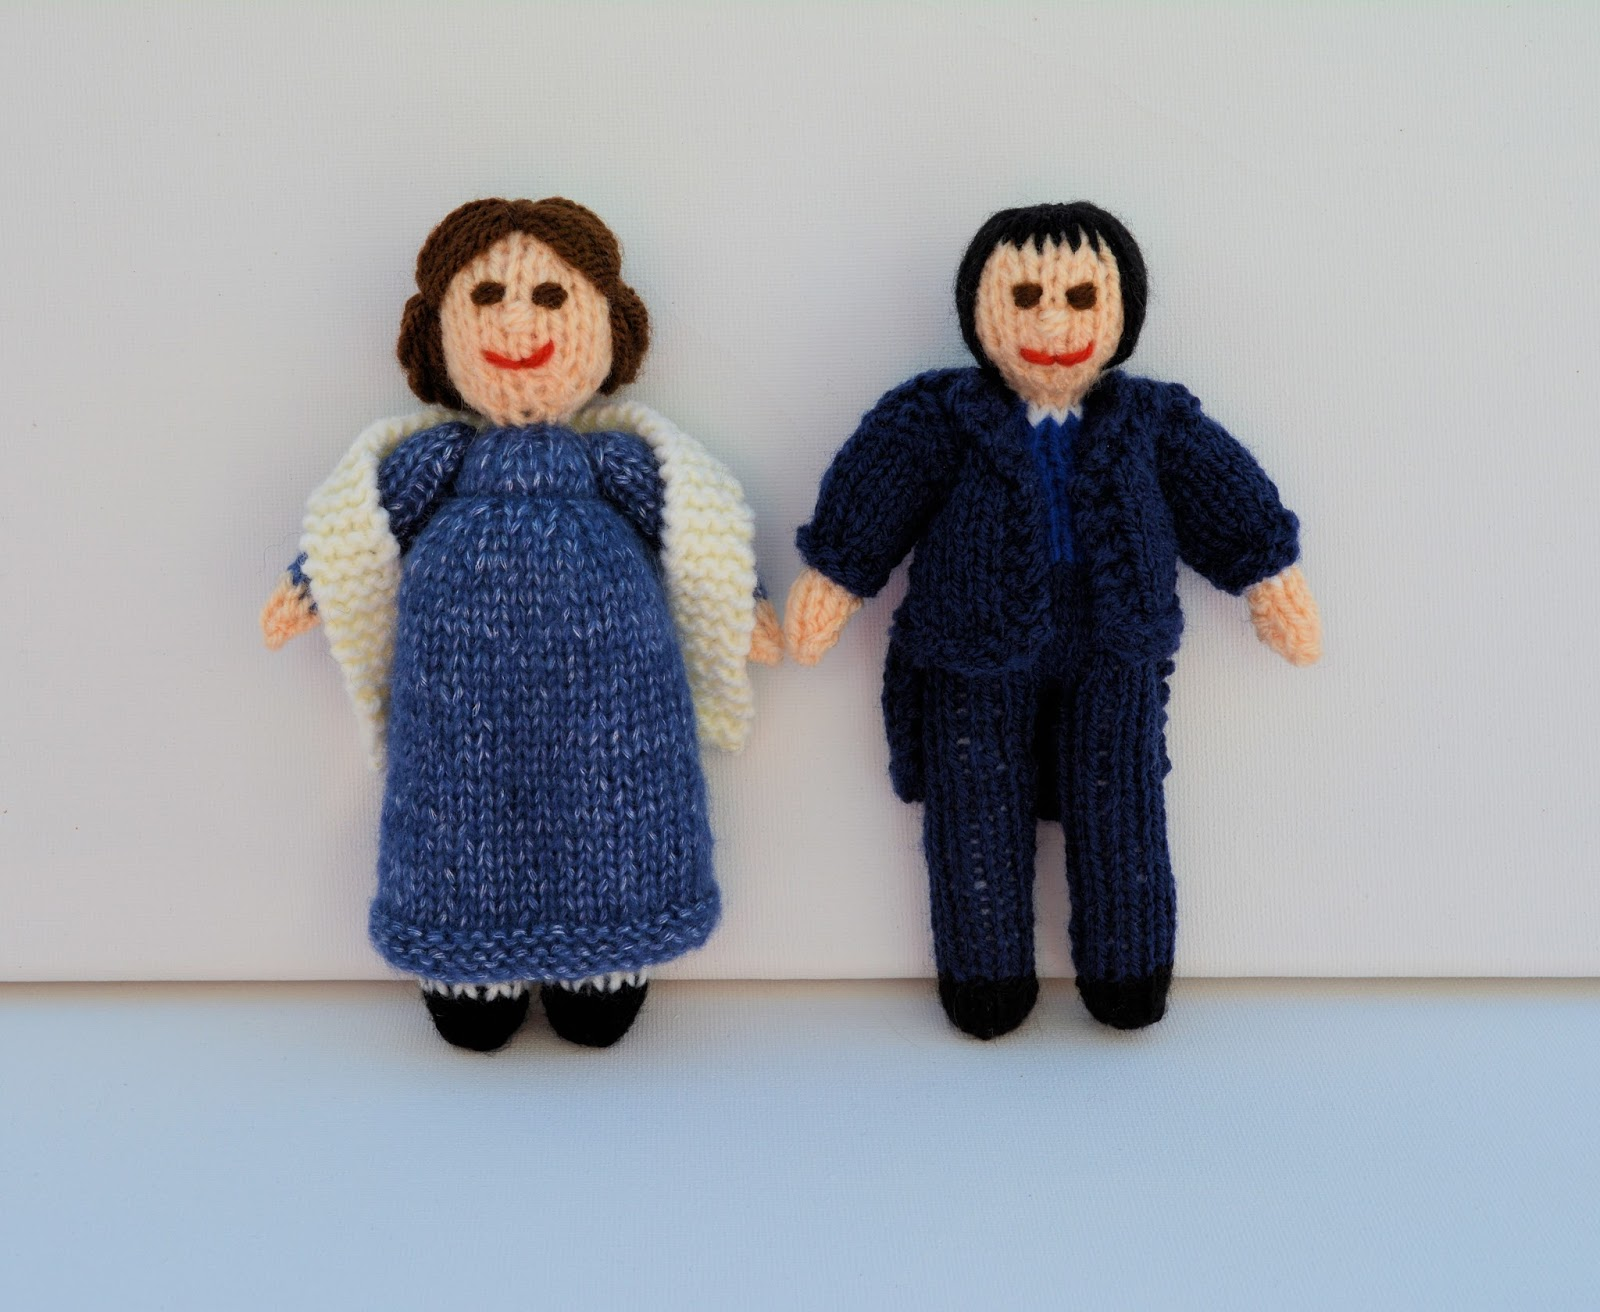 Jane Austen Knitting Patterns : Edith Grace Designs: Jane Austen Doll - Pride & Prejudice Elizabeth Benne...